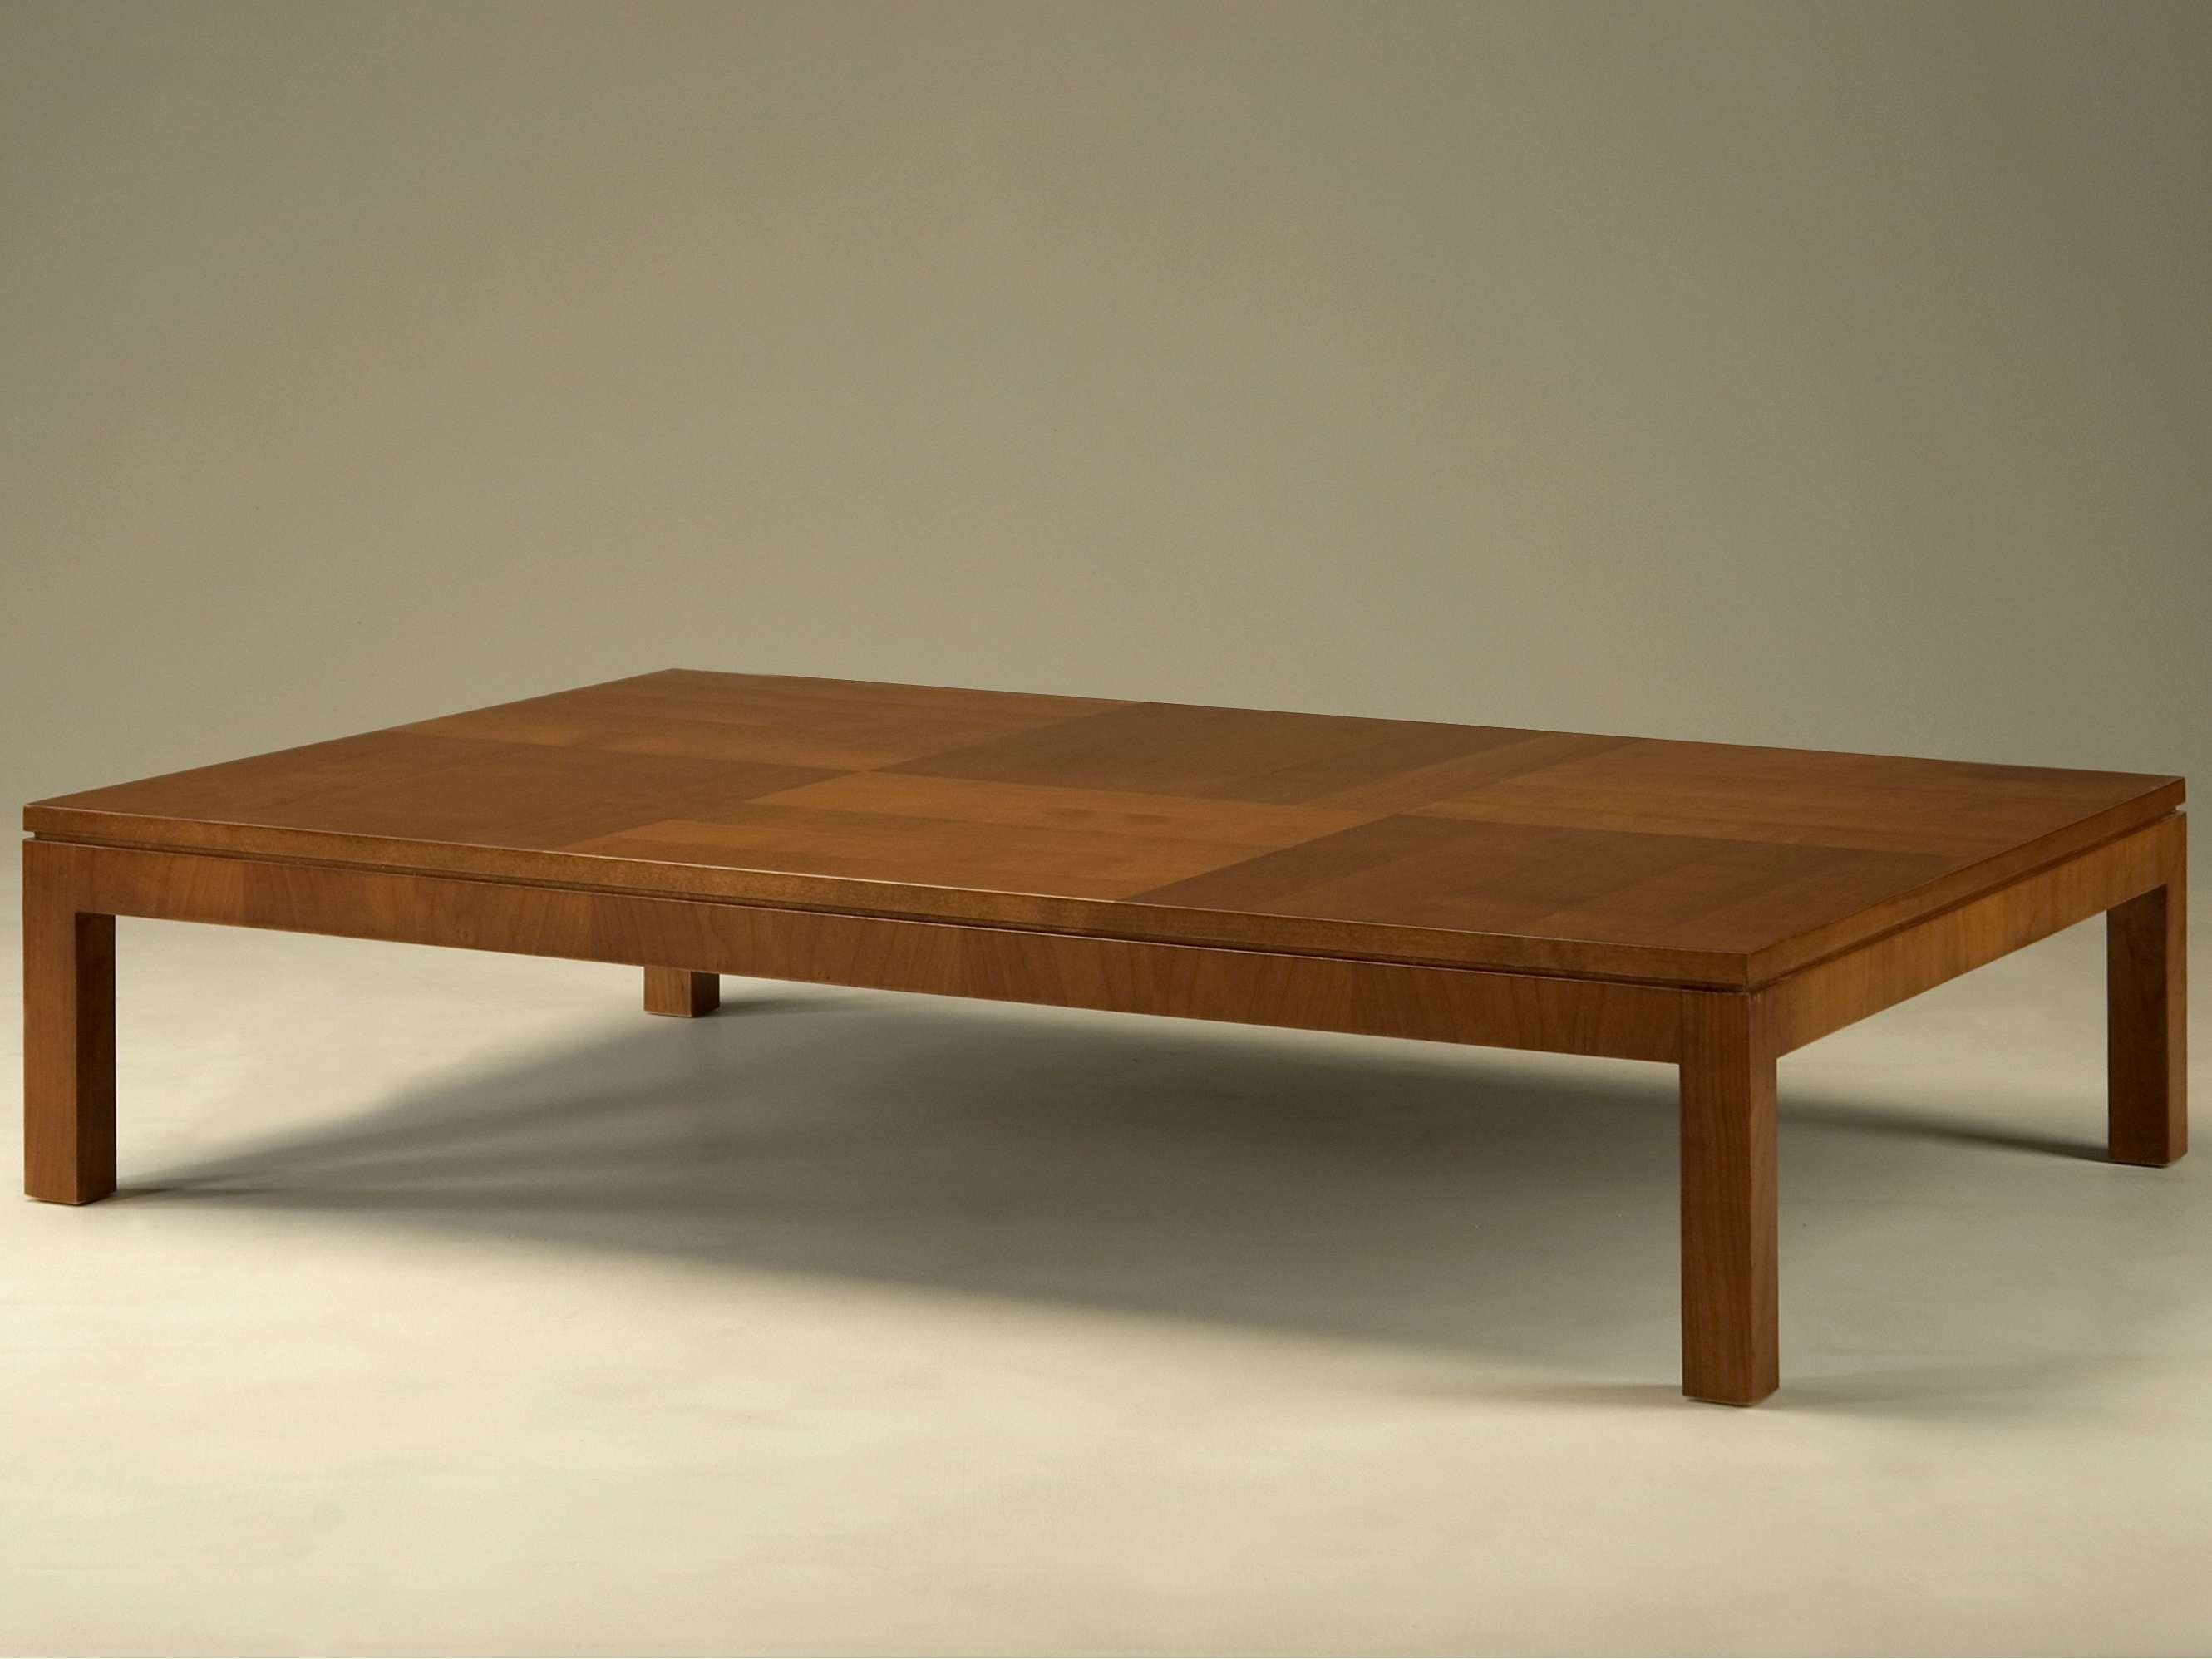 2017 Oversized Square Coffee Tables Pertaining To Coffee Table : Wonderful Square Coffee Table Large Square Coffee (View 7 of 20)